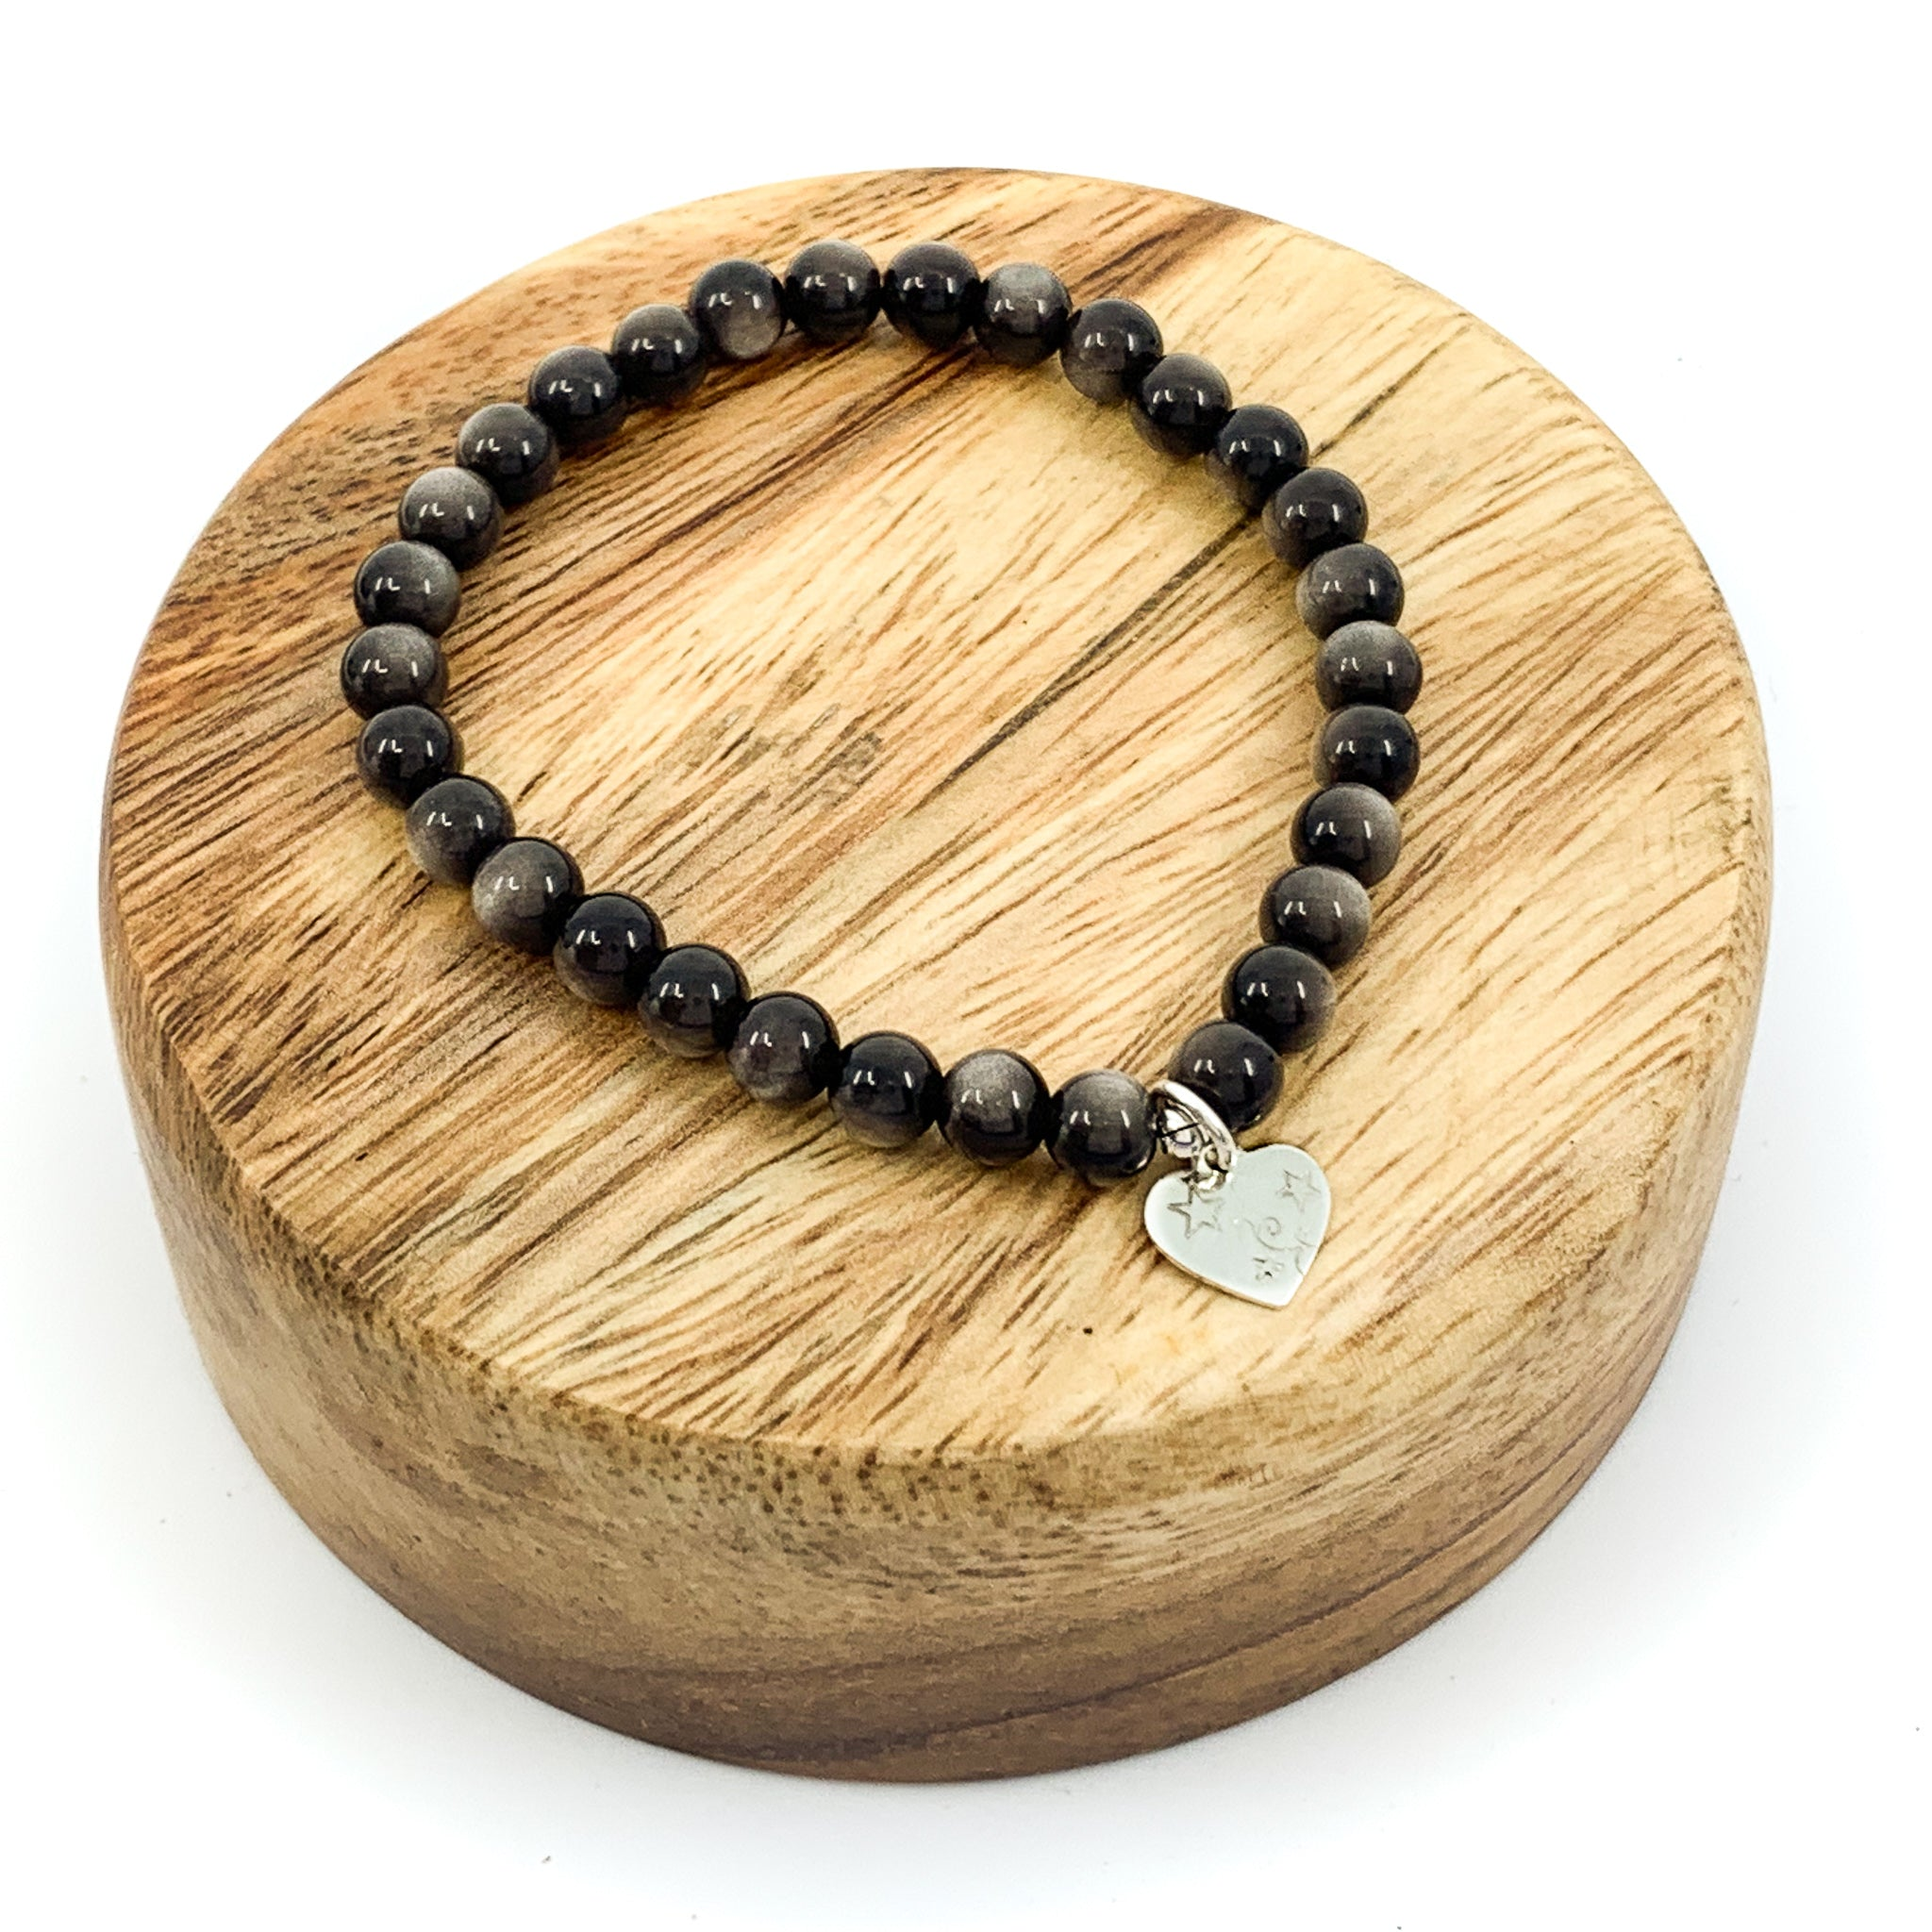 Silver Sheen Obsidian Stretchy Cord Bracelet - 6mm Round